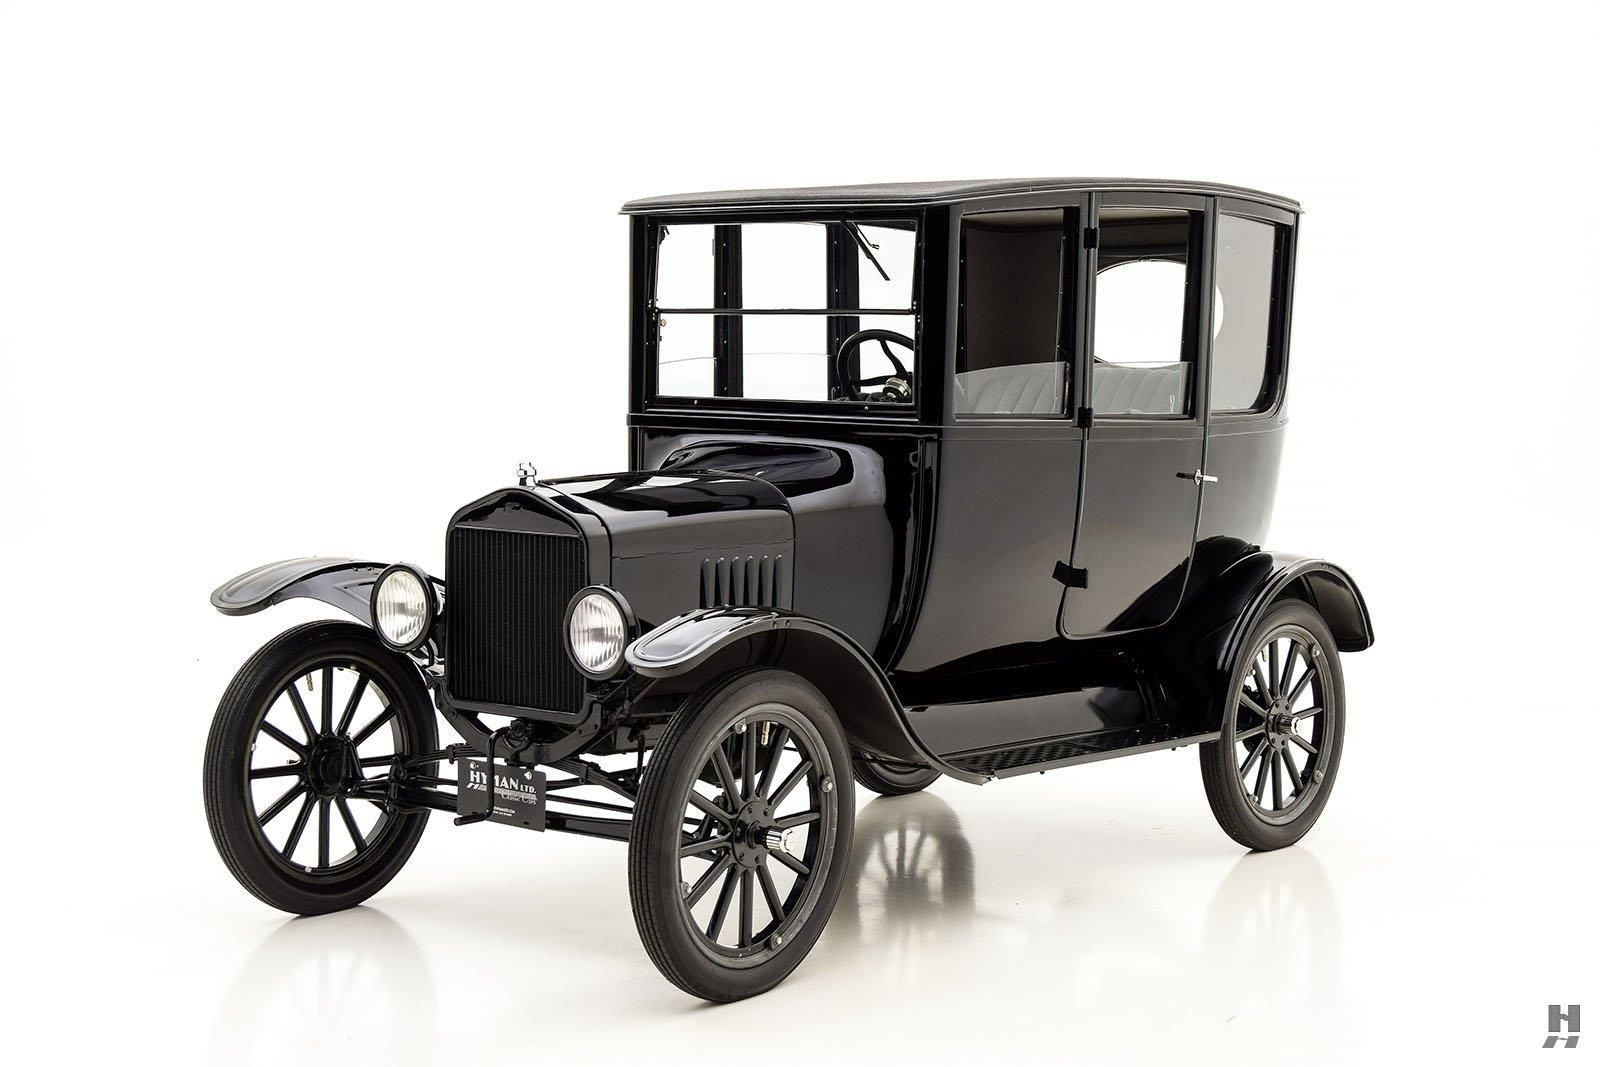 TBT On this day in 1908, the first Ford Model T rolled